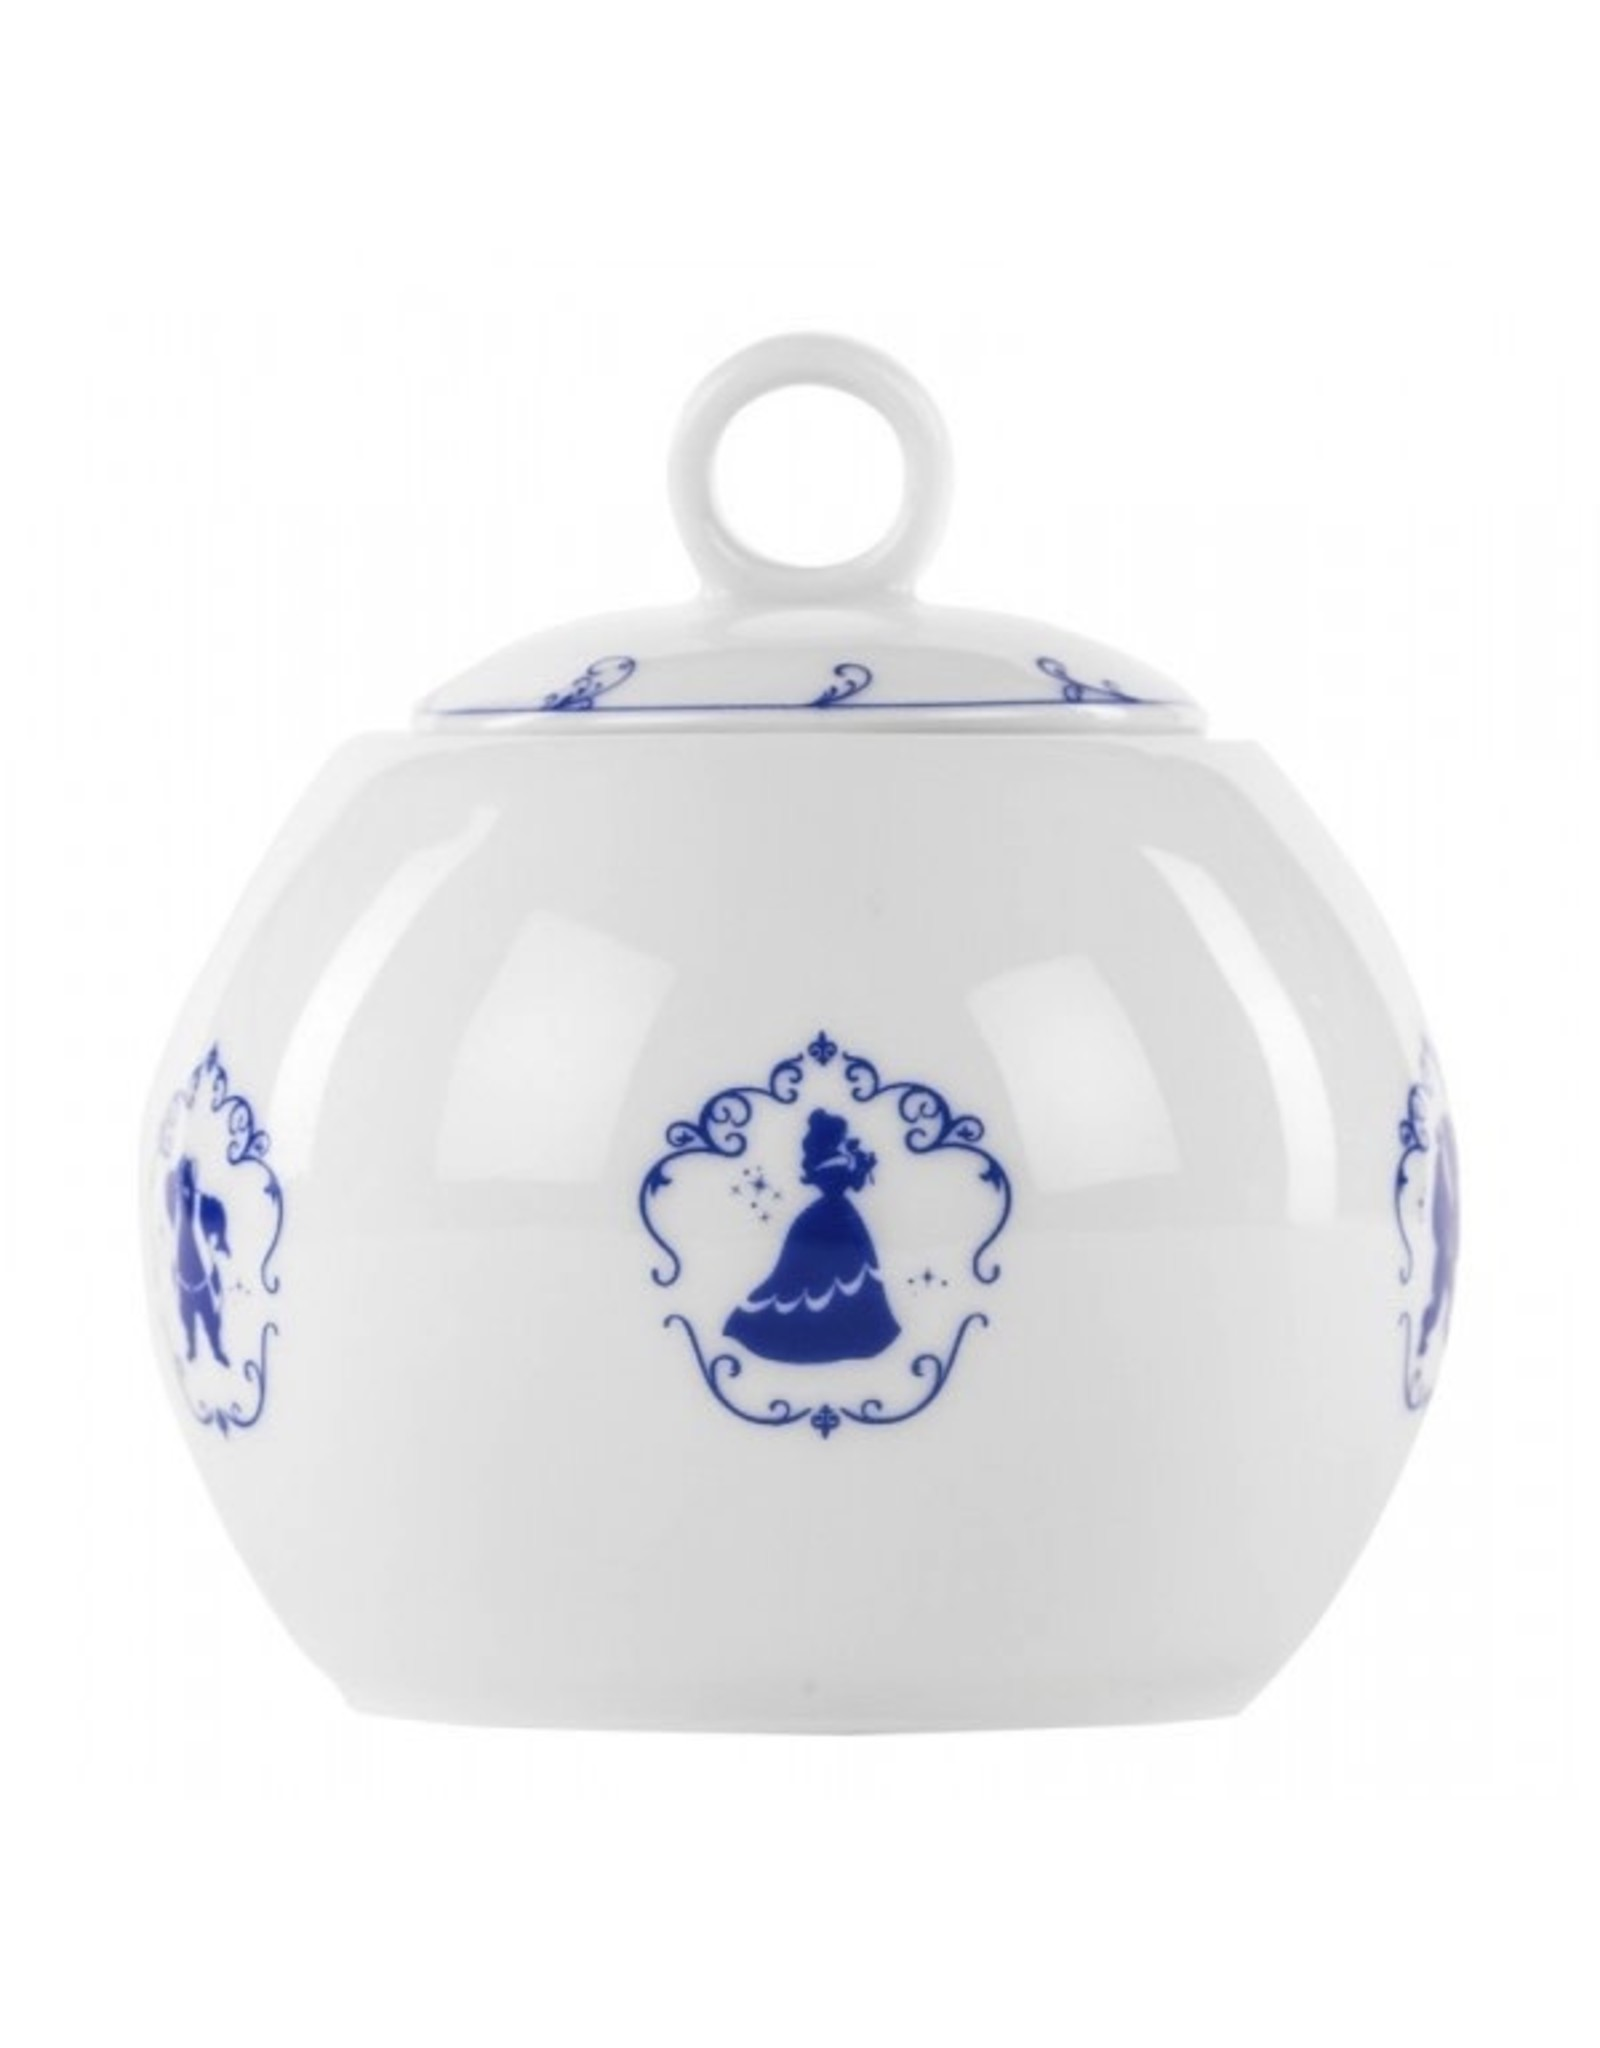 BEAUTY AND THE BEAST Suger Bowl Porcelain